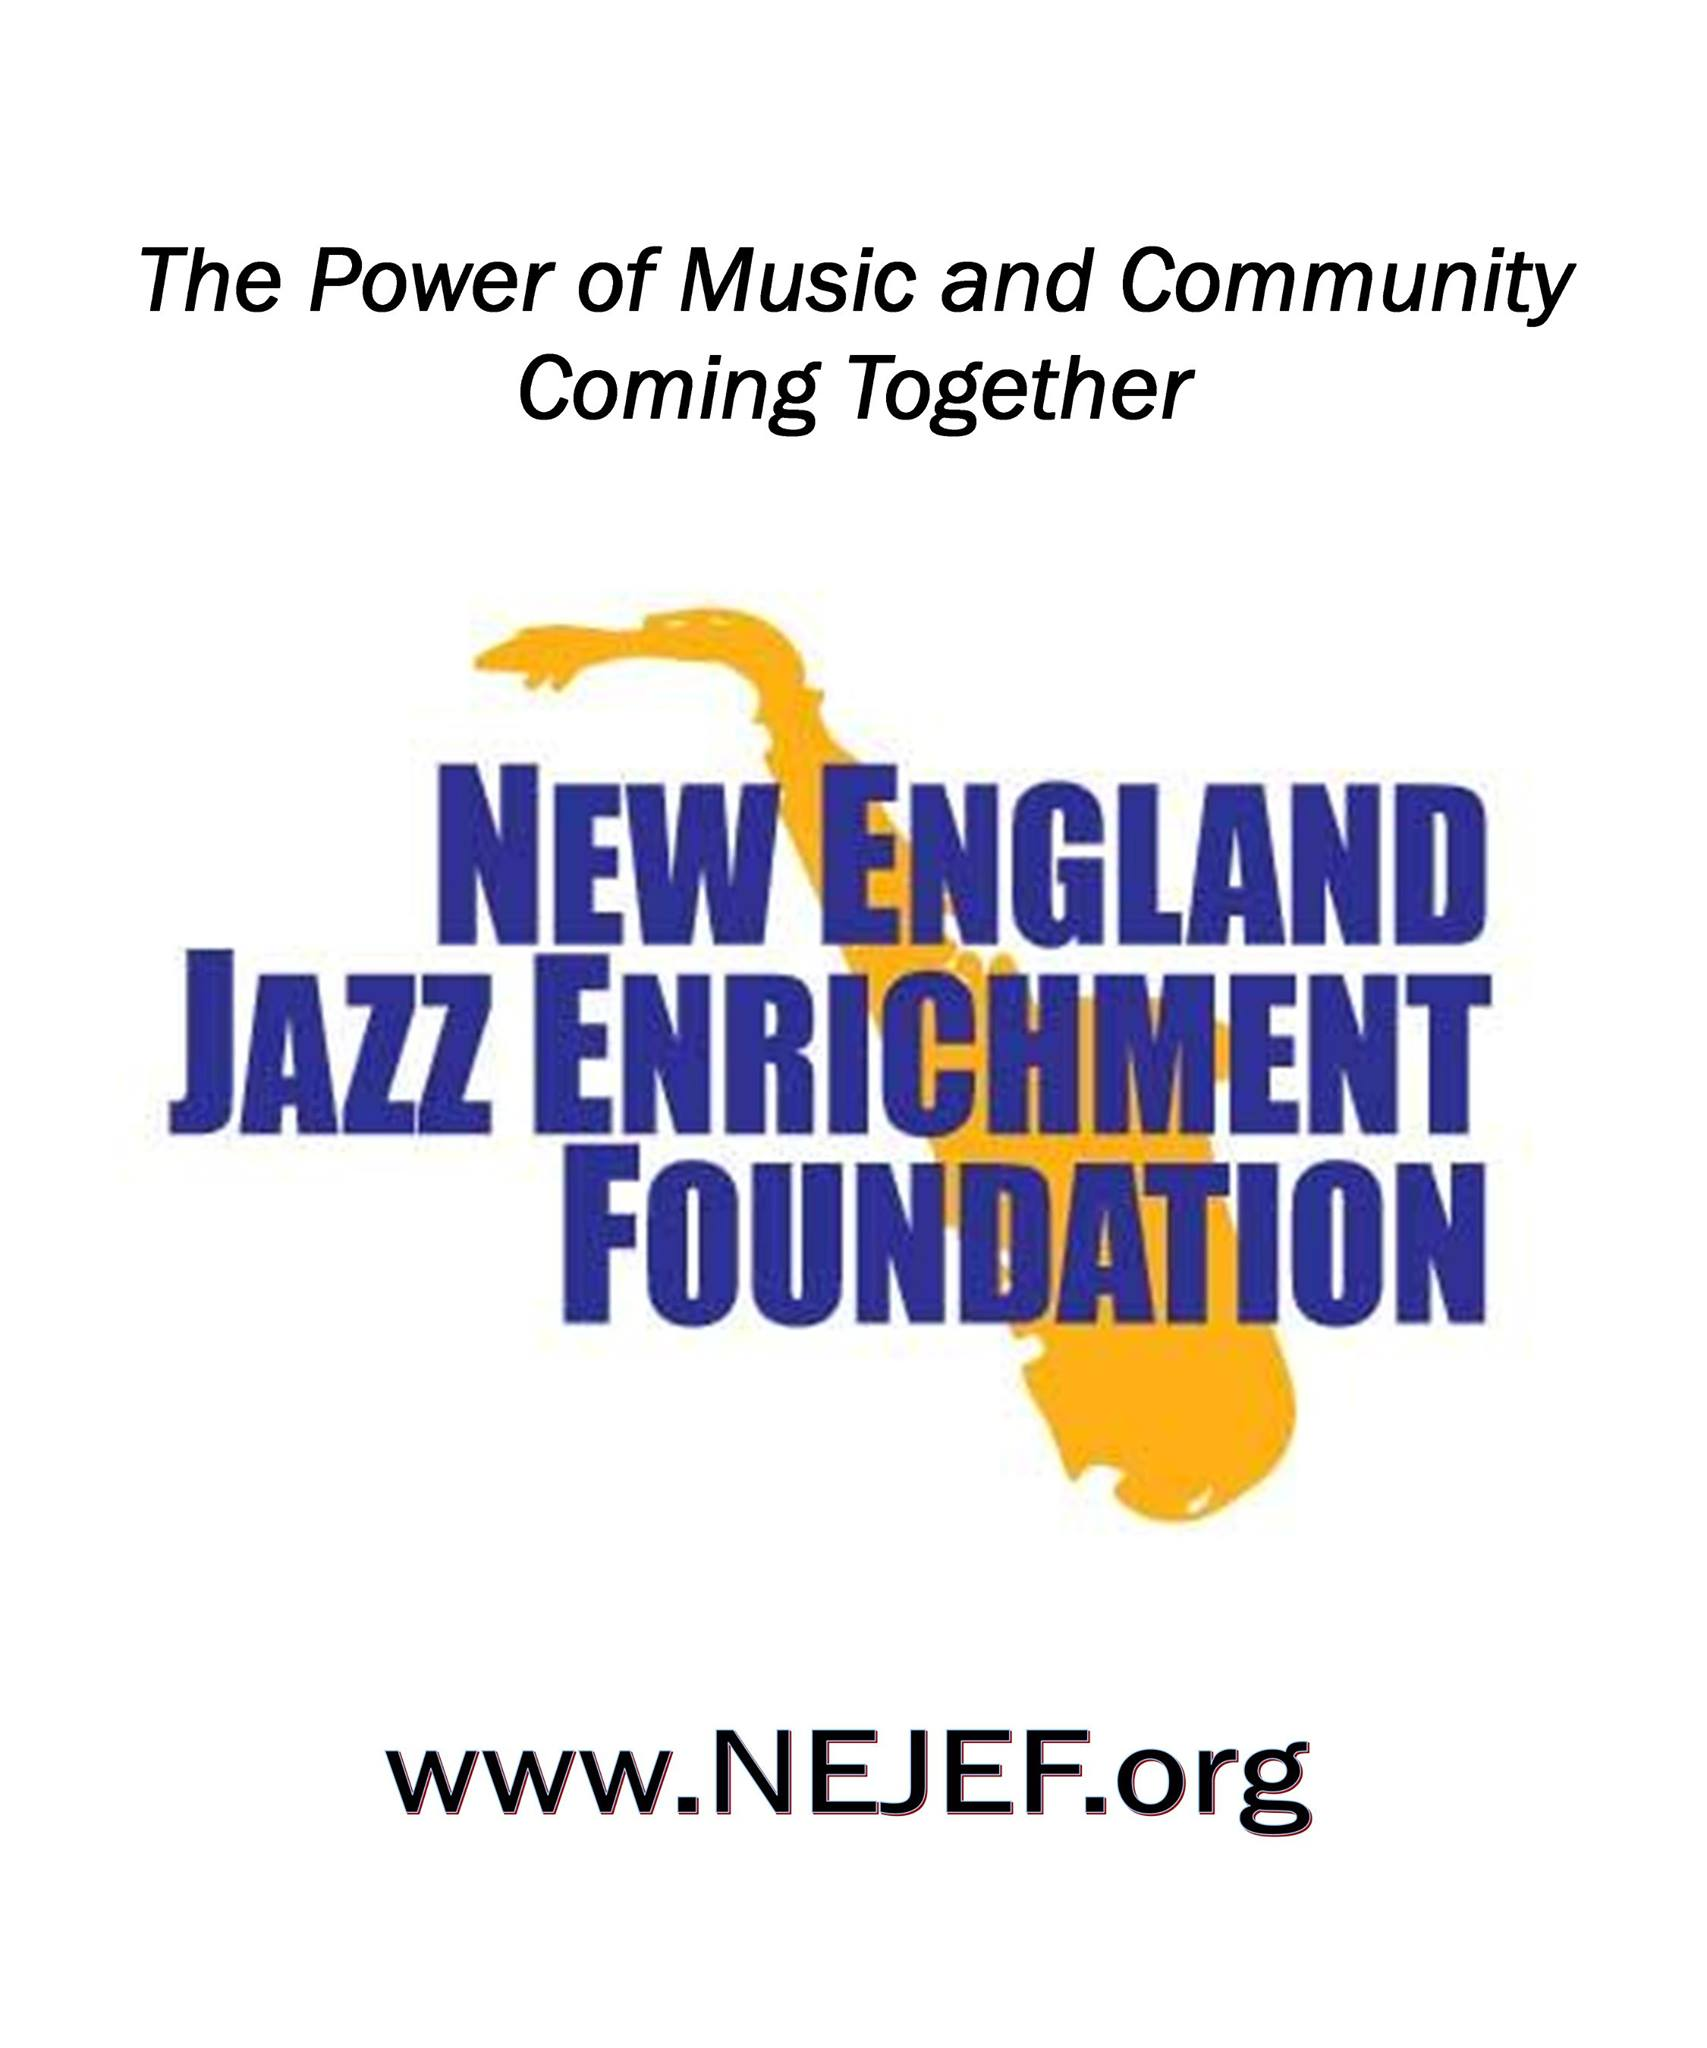 New England Jazz Enrichment Foundation